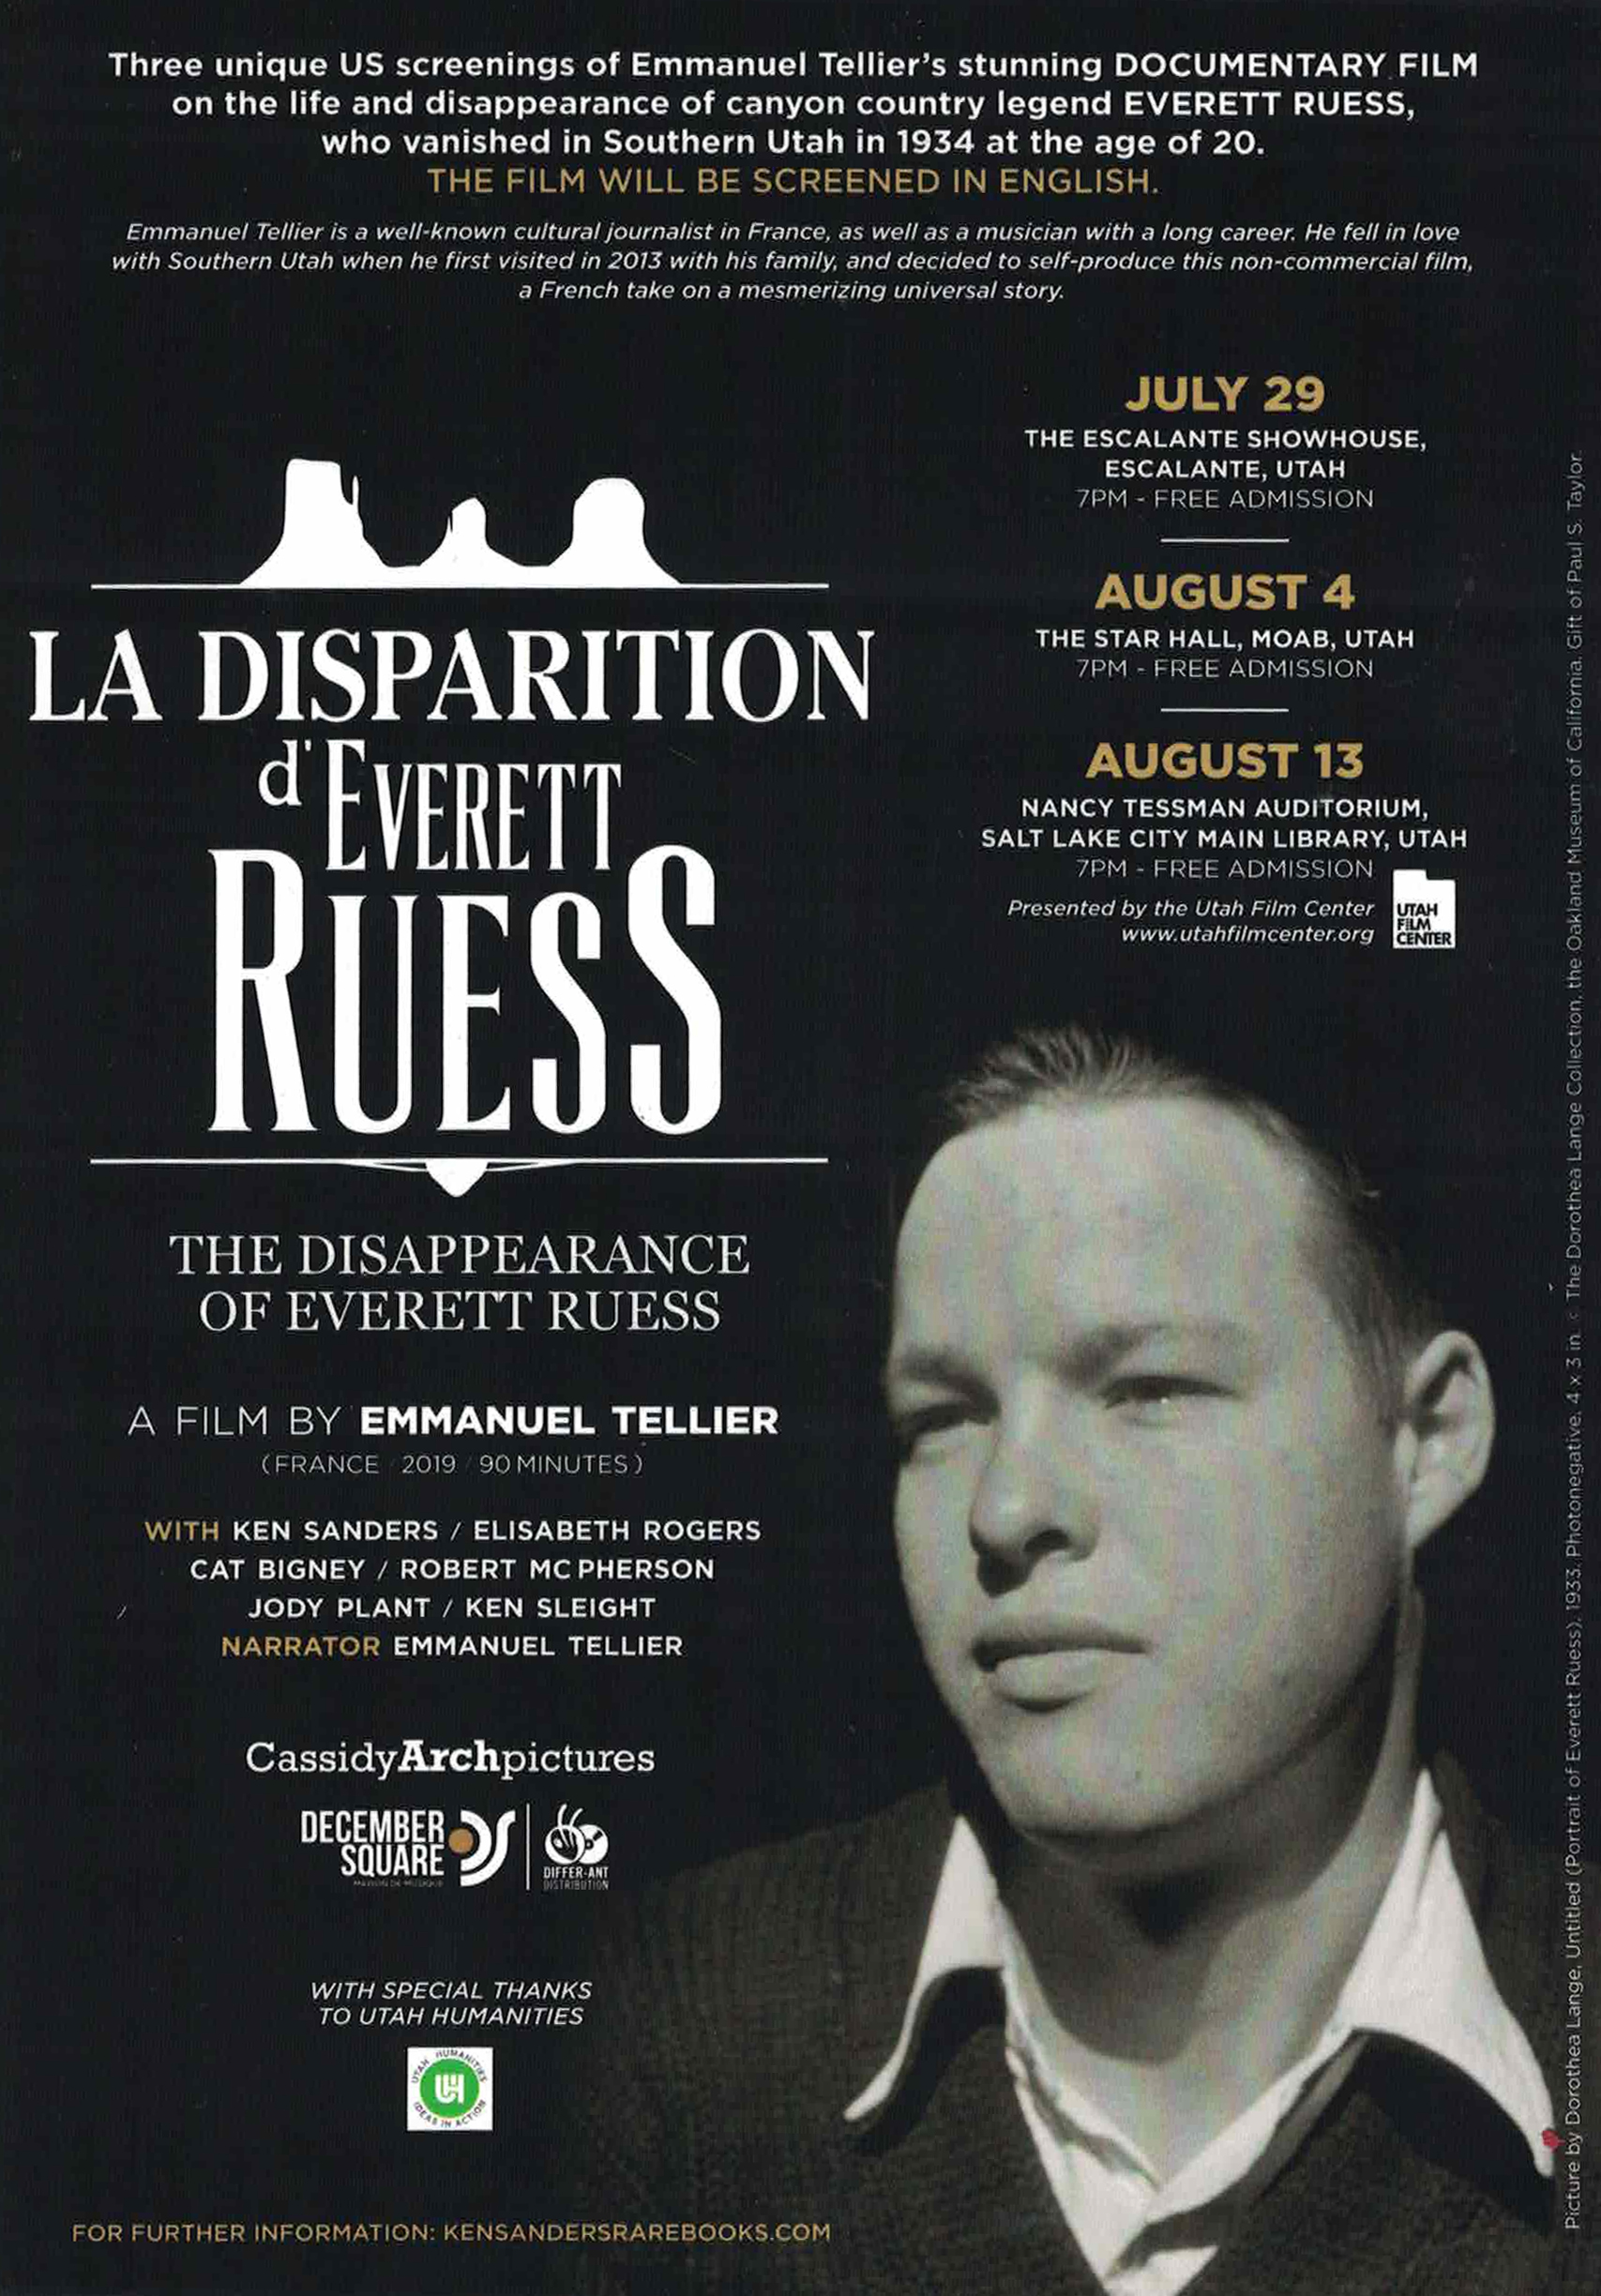 La Disparition d'Everett Ruess